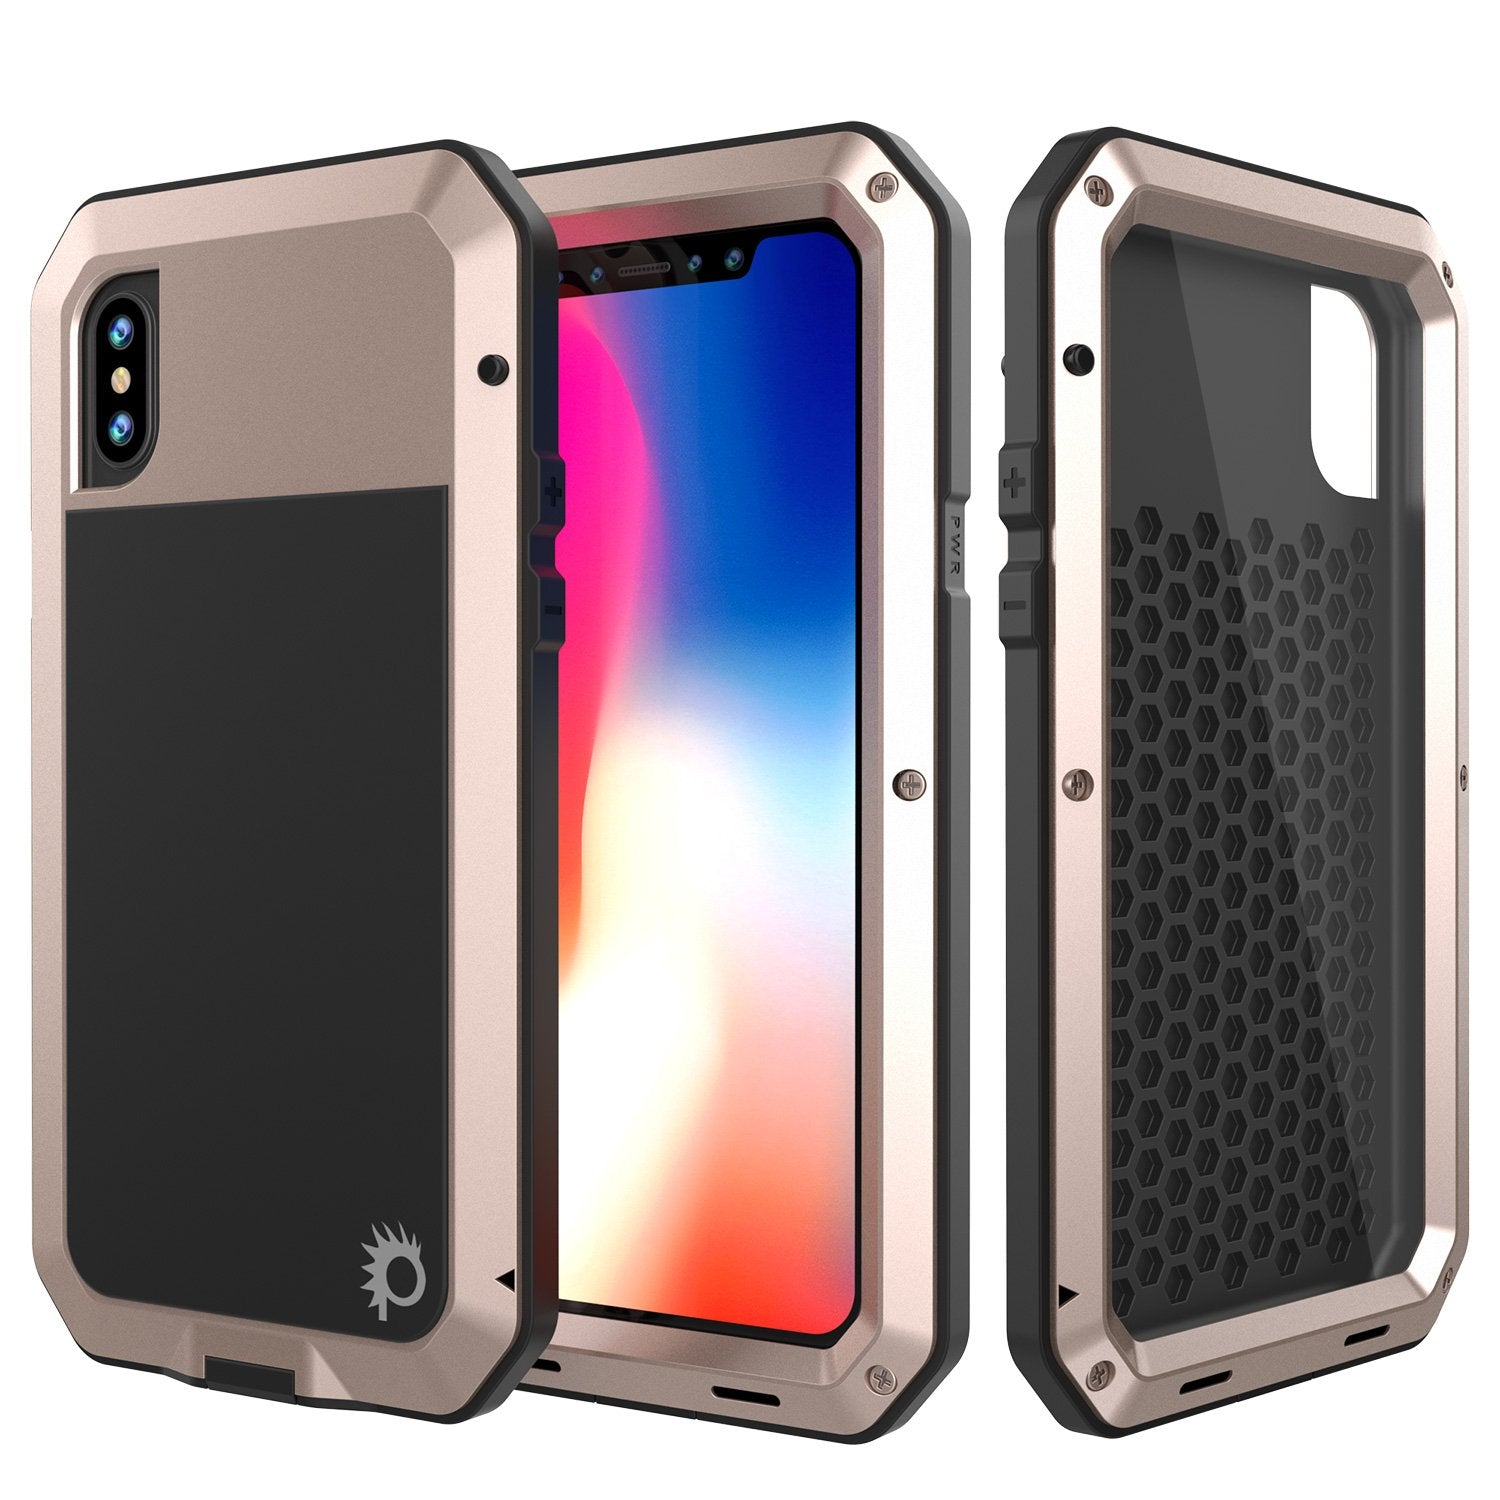 iPhone X Metal Case, Heavy Duty Military Grade Rugged Armor Cover [shock proof] Hybrid Full Body Hard Aluminum & TPU Design [non slip] W/ Prime Drop Protection for Apple iPhone 10 [Gold]